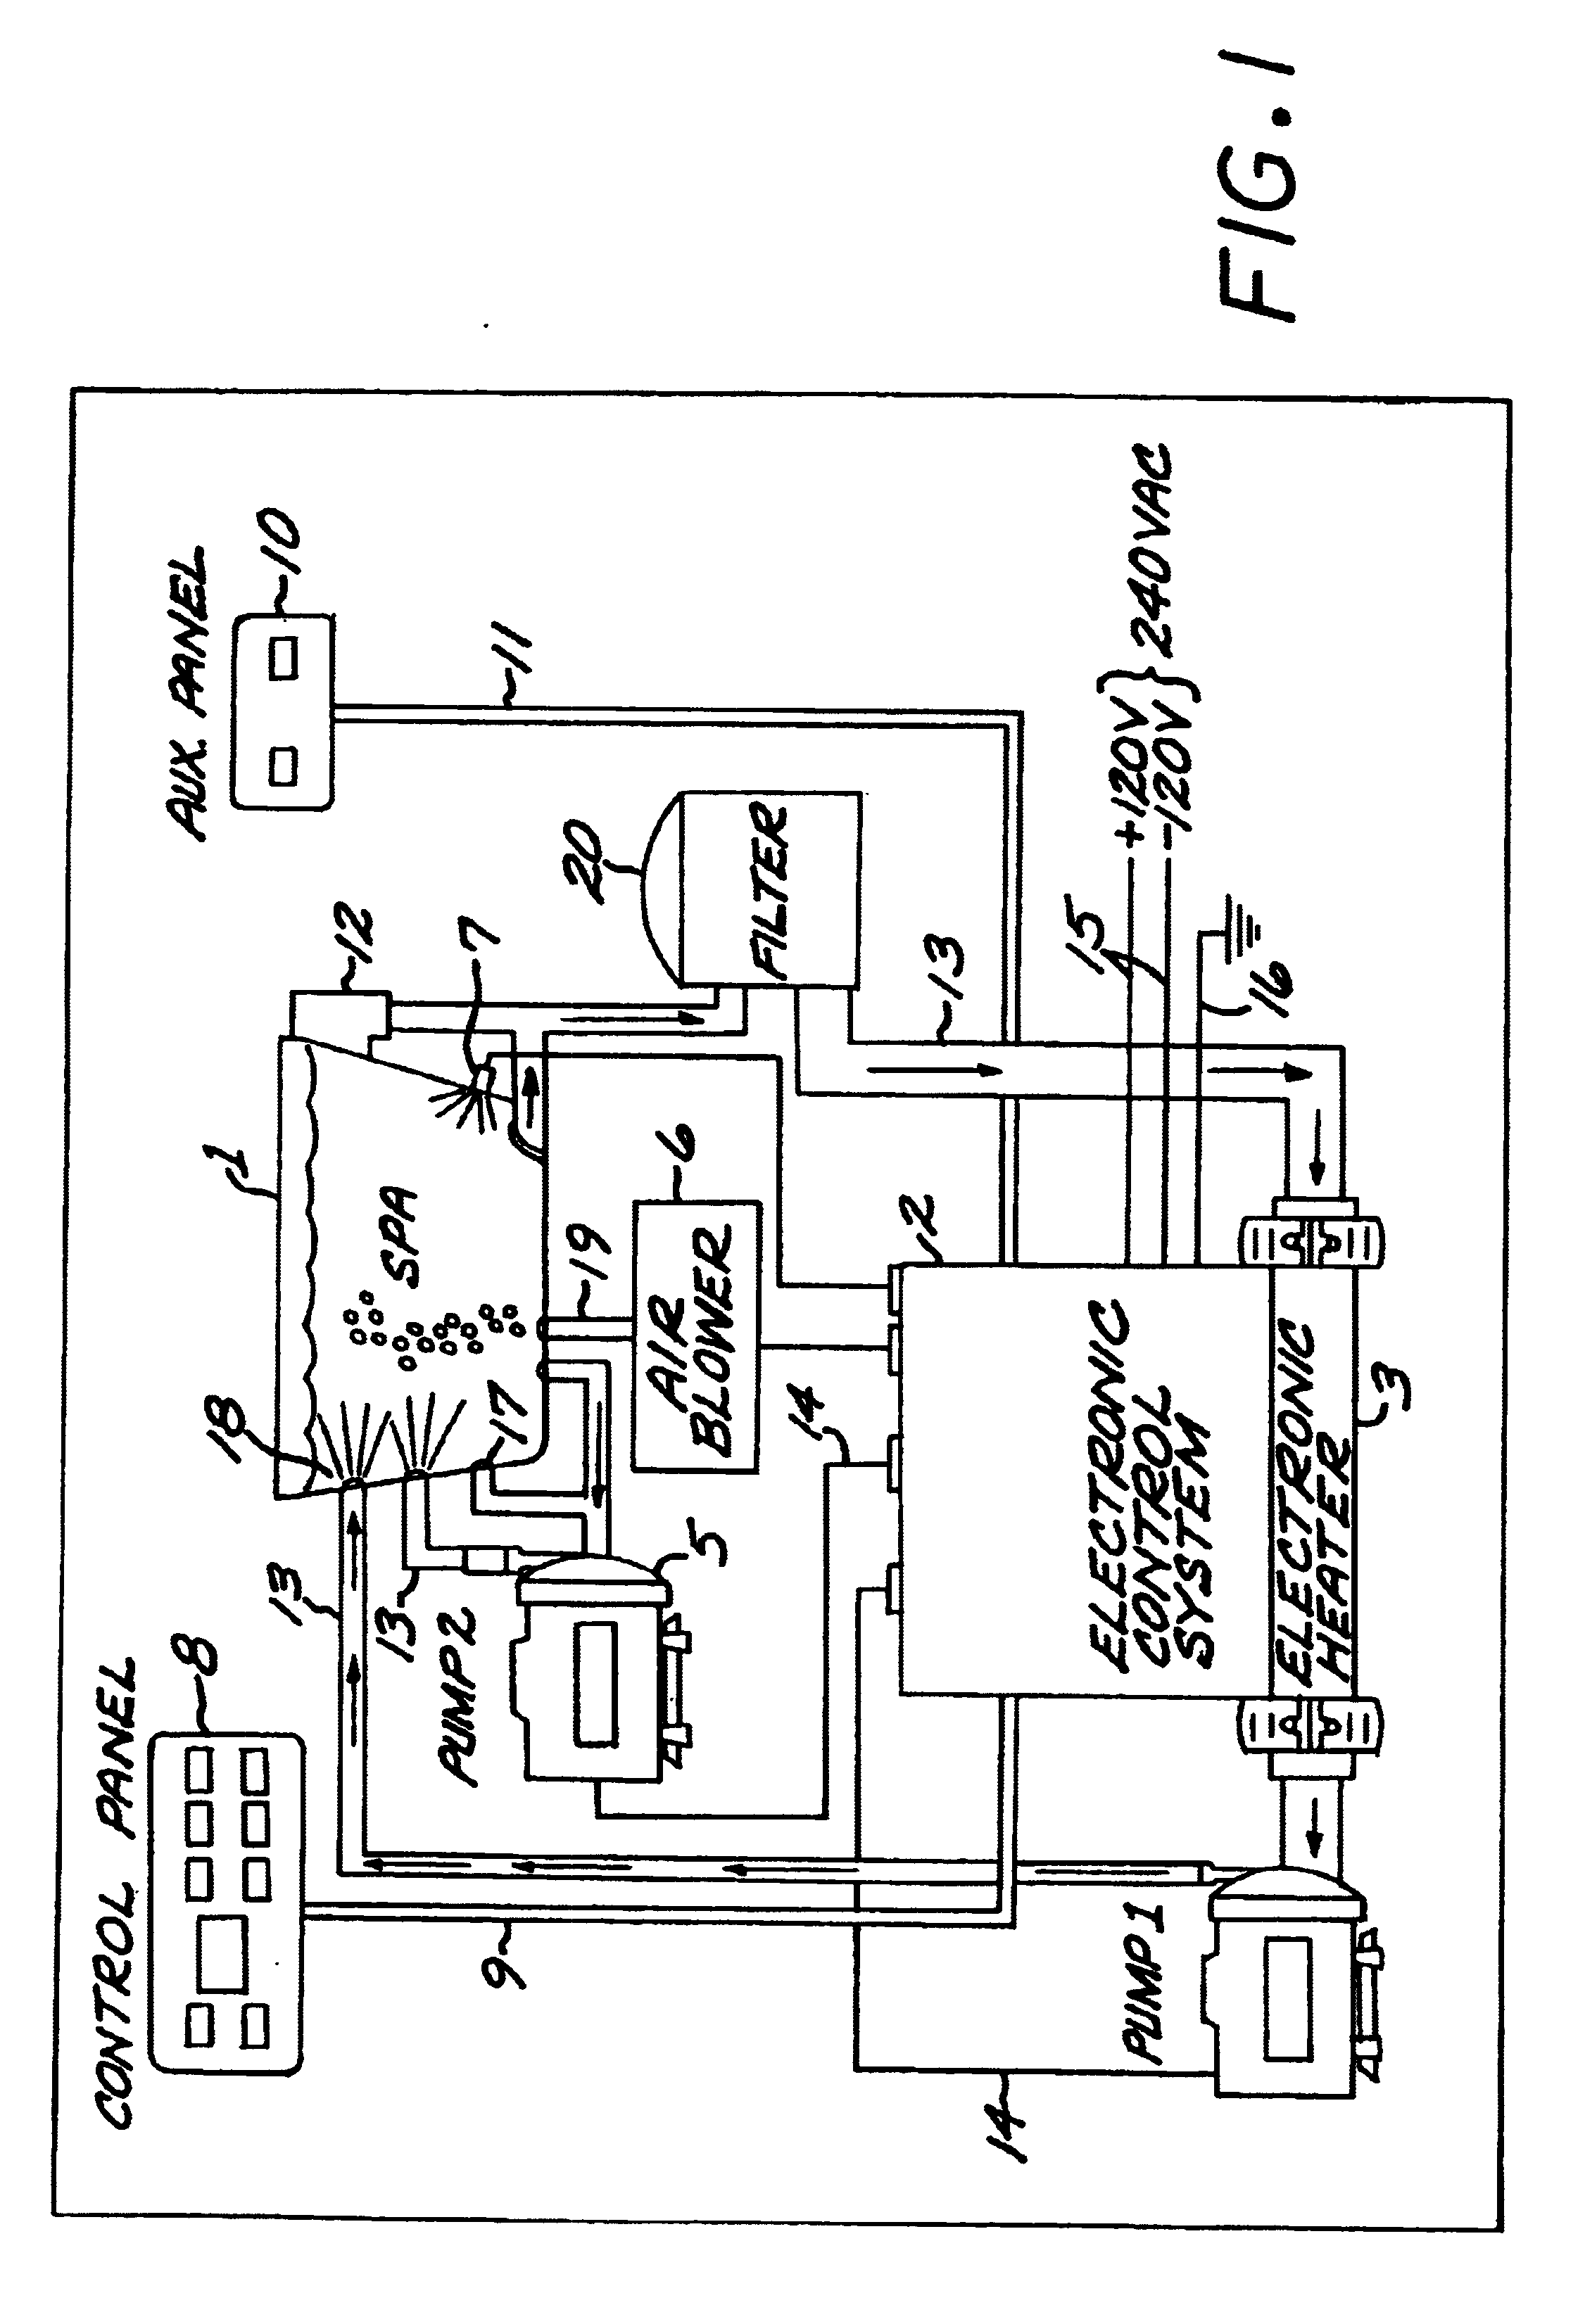 patent us6629021 - techniques for detecting ground failures in bathing installations - google ... 4001e control panel wiring diagram nexys control panel wiring diagram